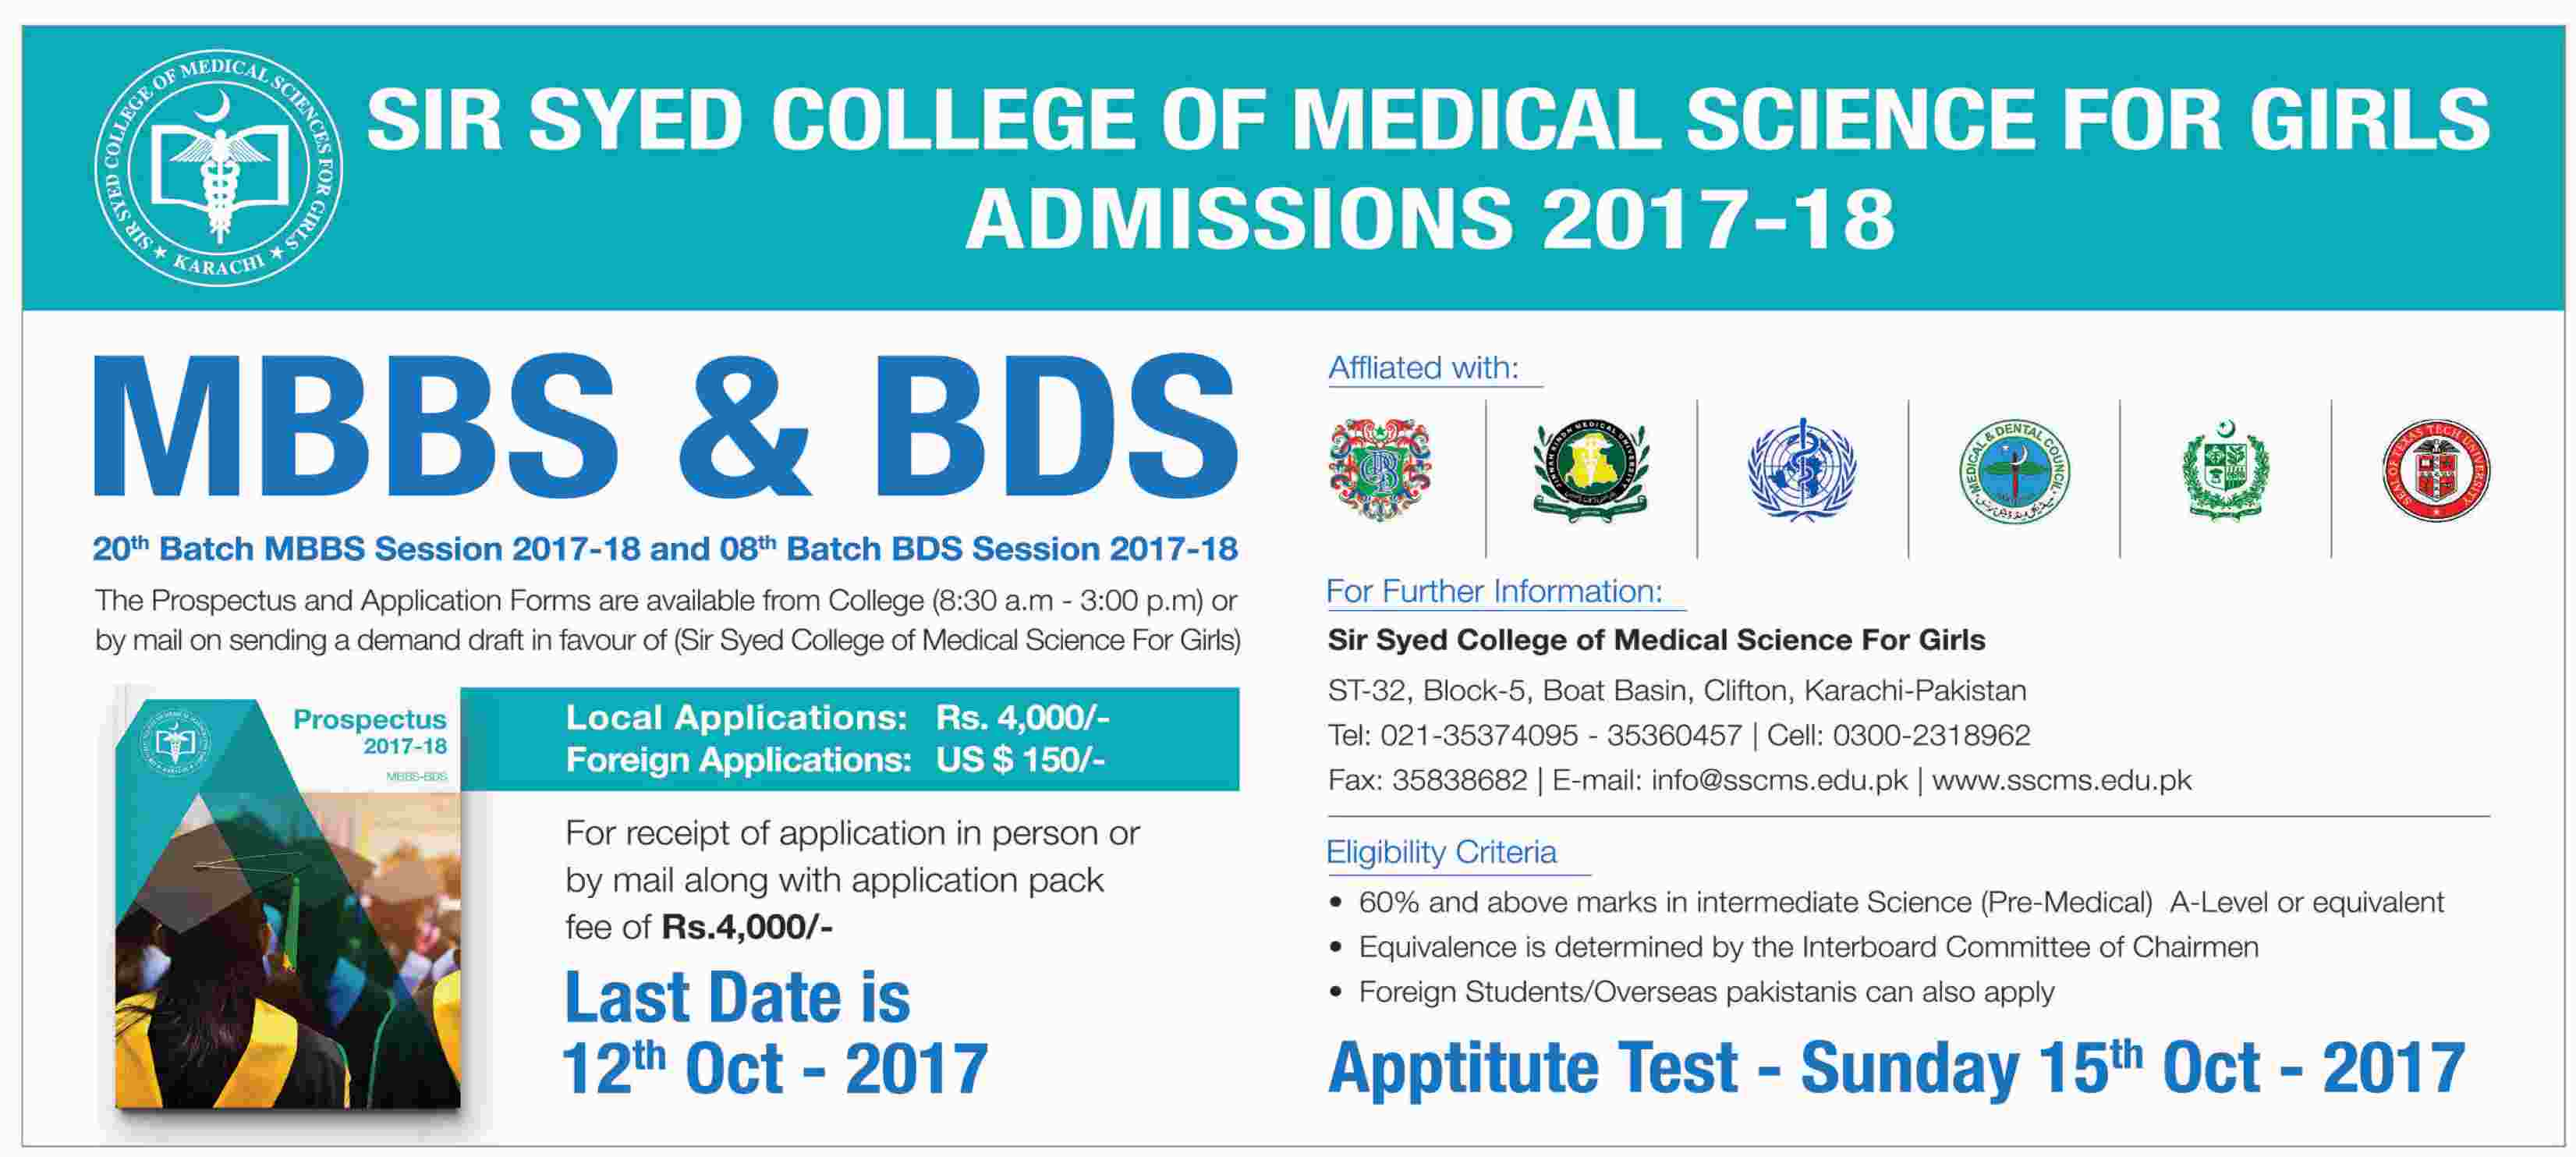 Sir Syed College Of Medical Sciences For Girls Admission 2017